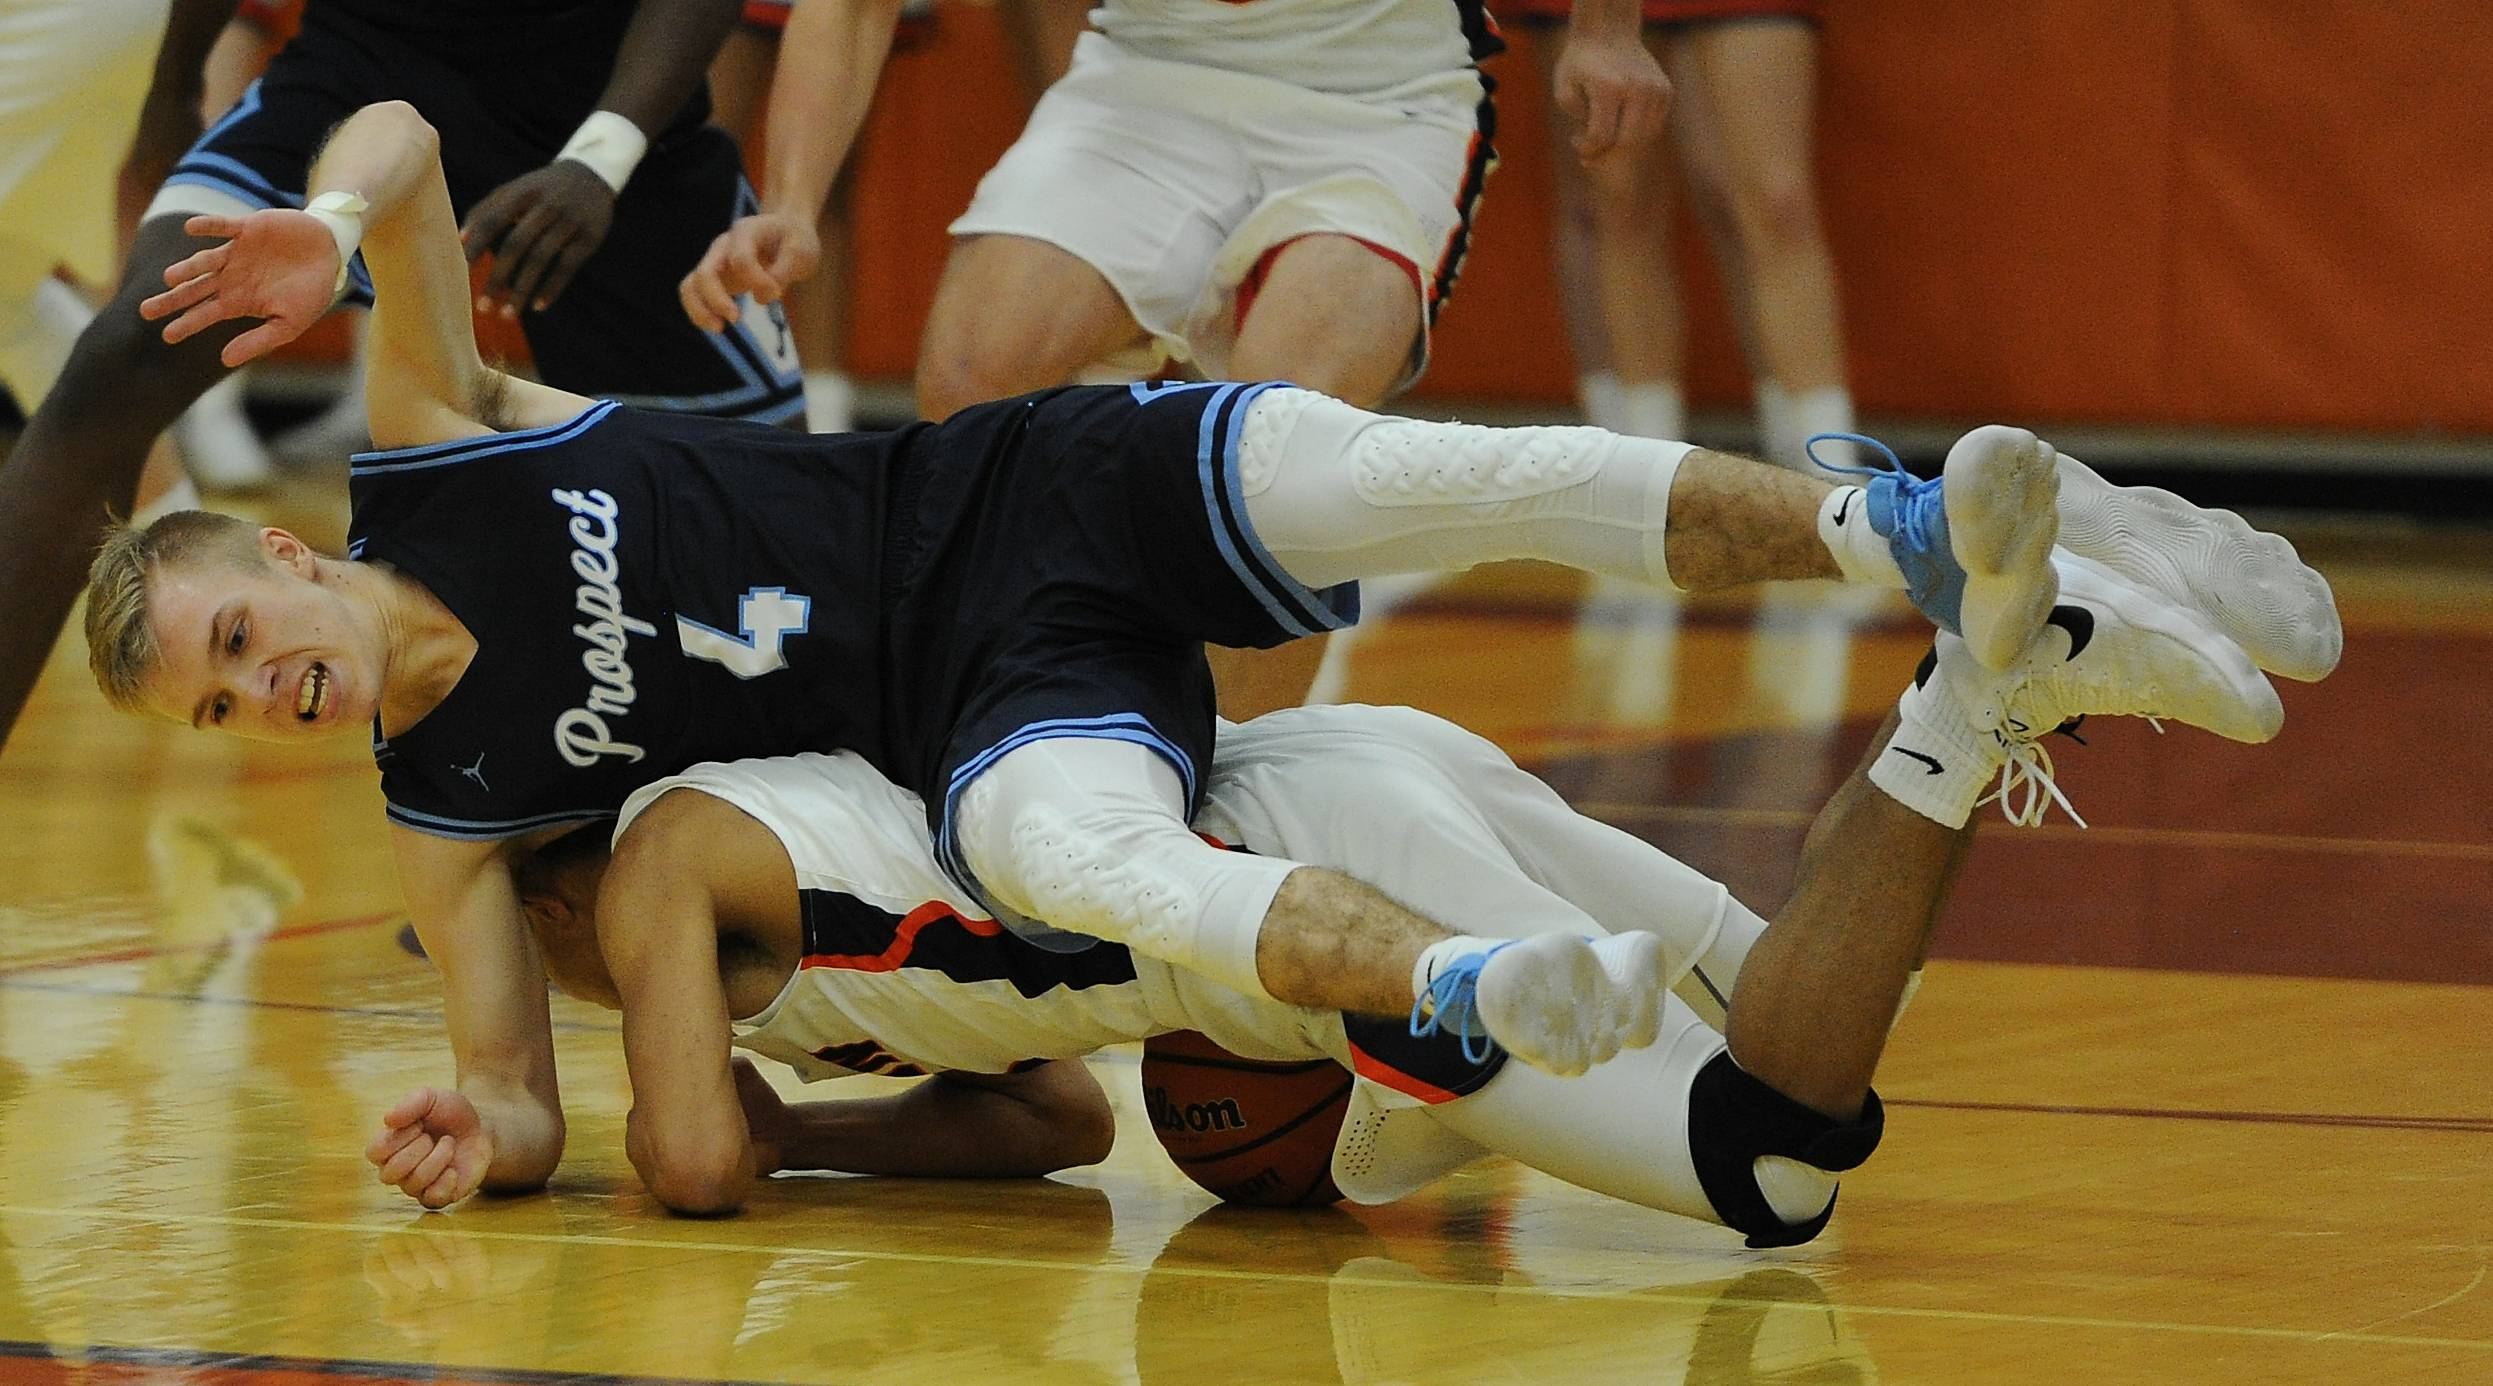 Prospect's David Swedura and Buffalo Grove's Caleb Mayhorn hit the deck after colliding while in pursuit of a loose ball in the first half Friday at Buffalo Grove.